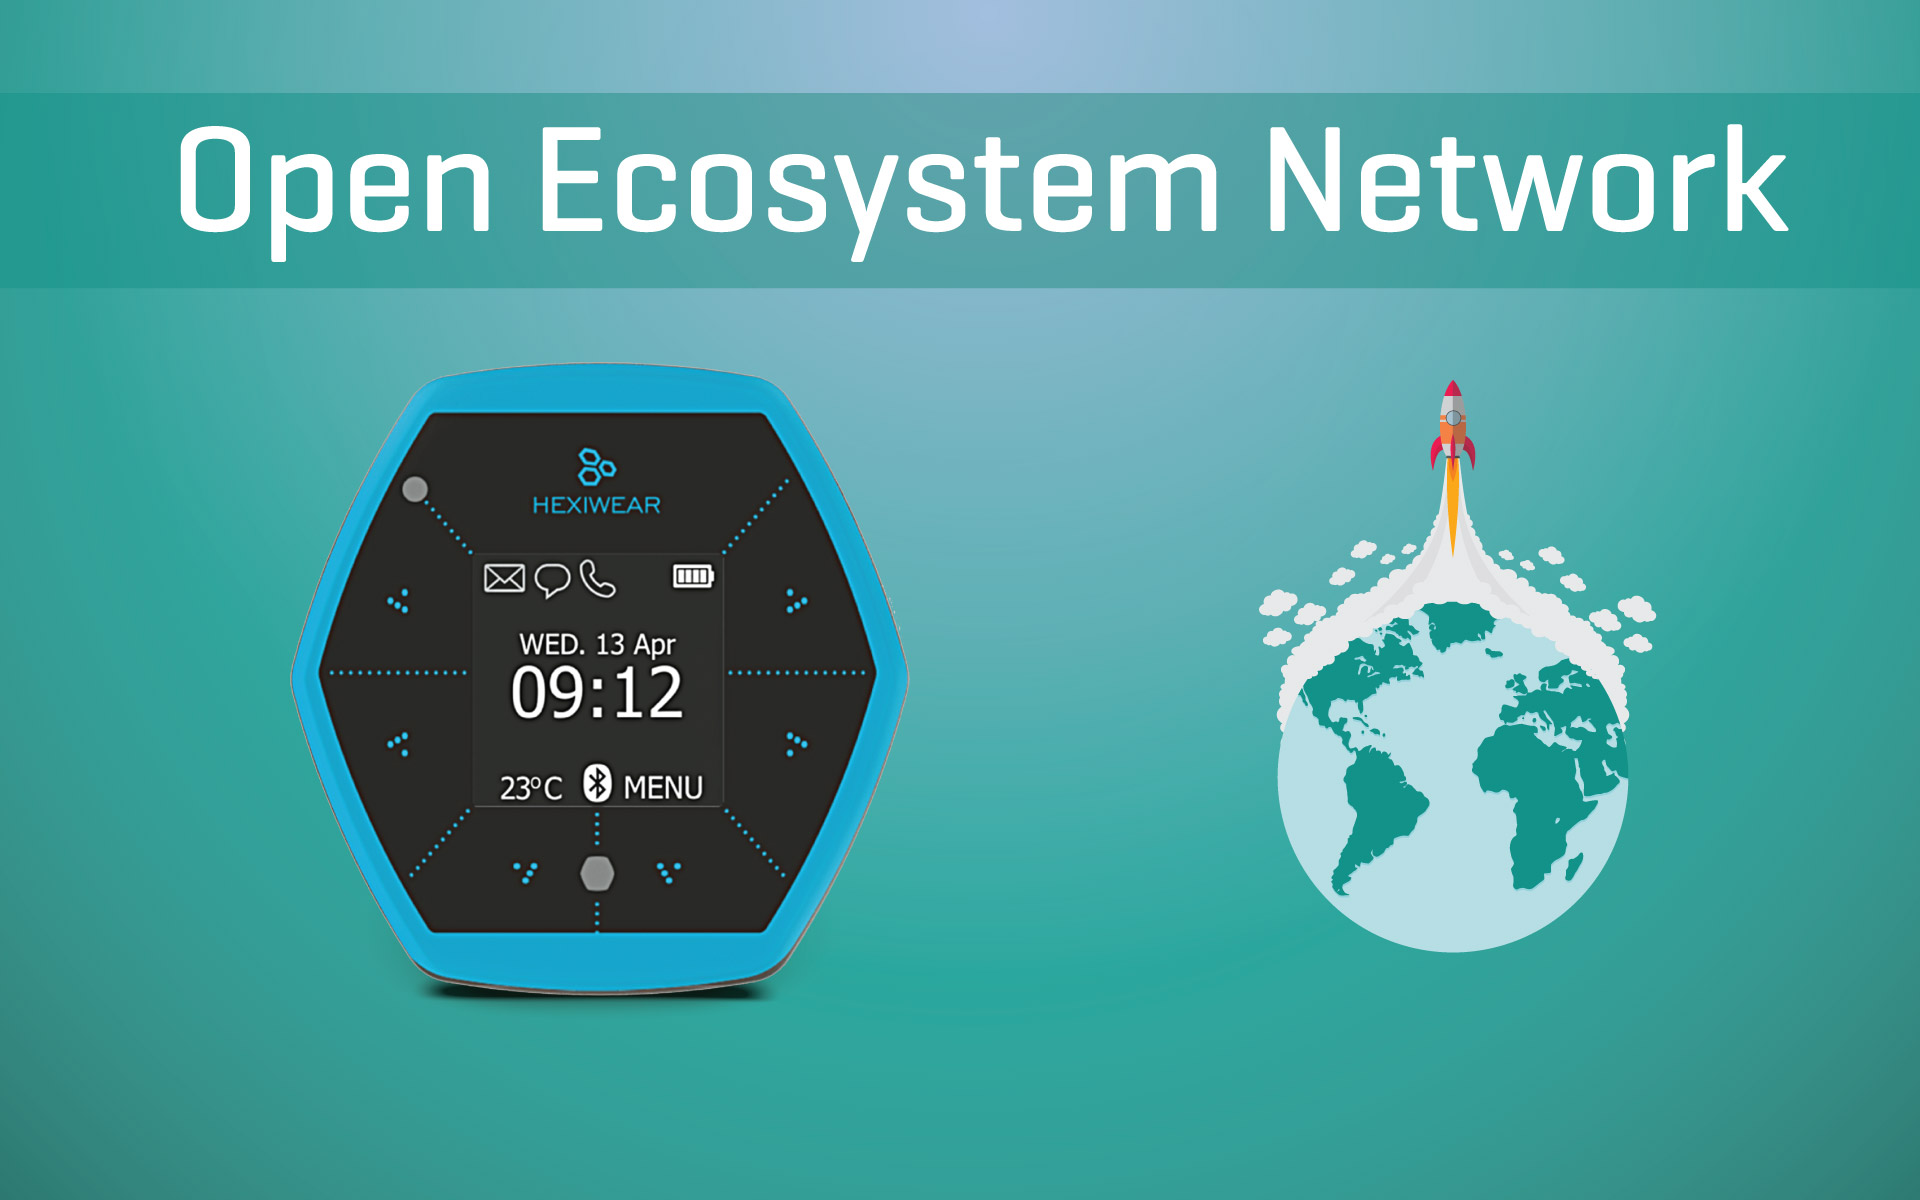 Hexiwear and Nokia's Open Ecosystem